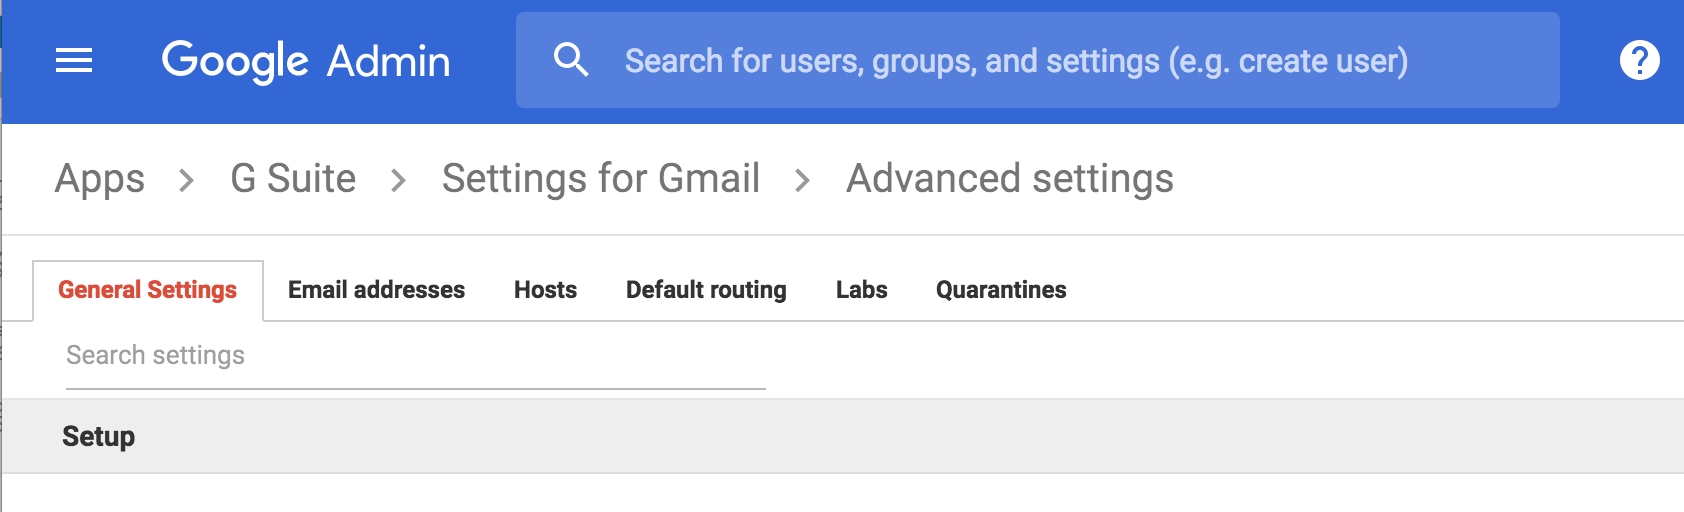 Google Admin Console Advanced settings set up - general settings section